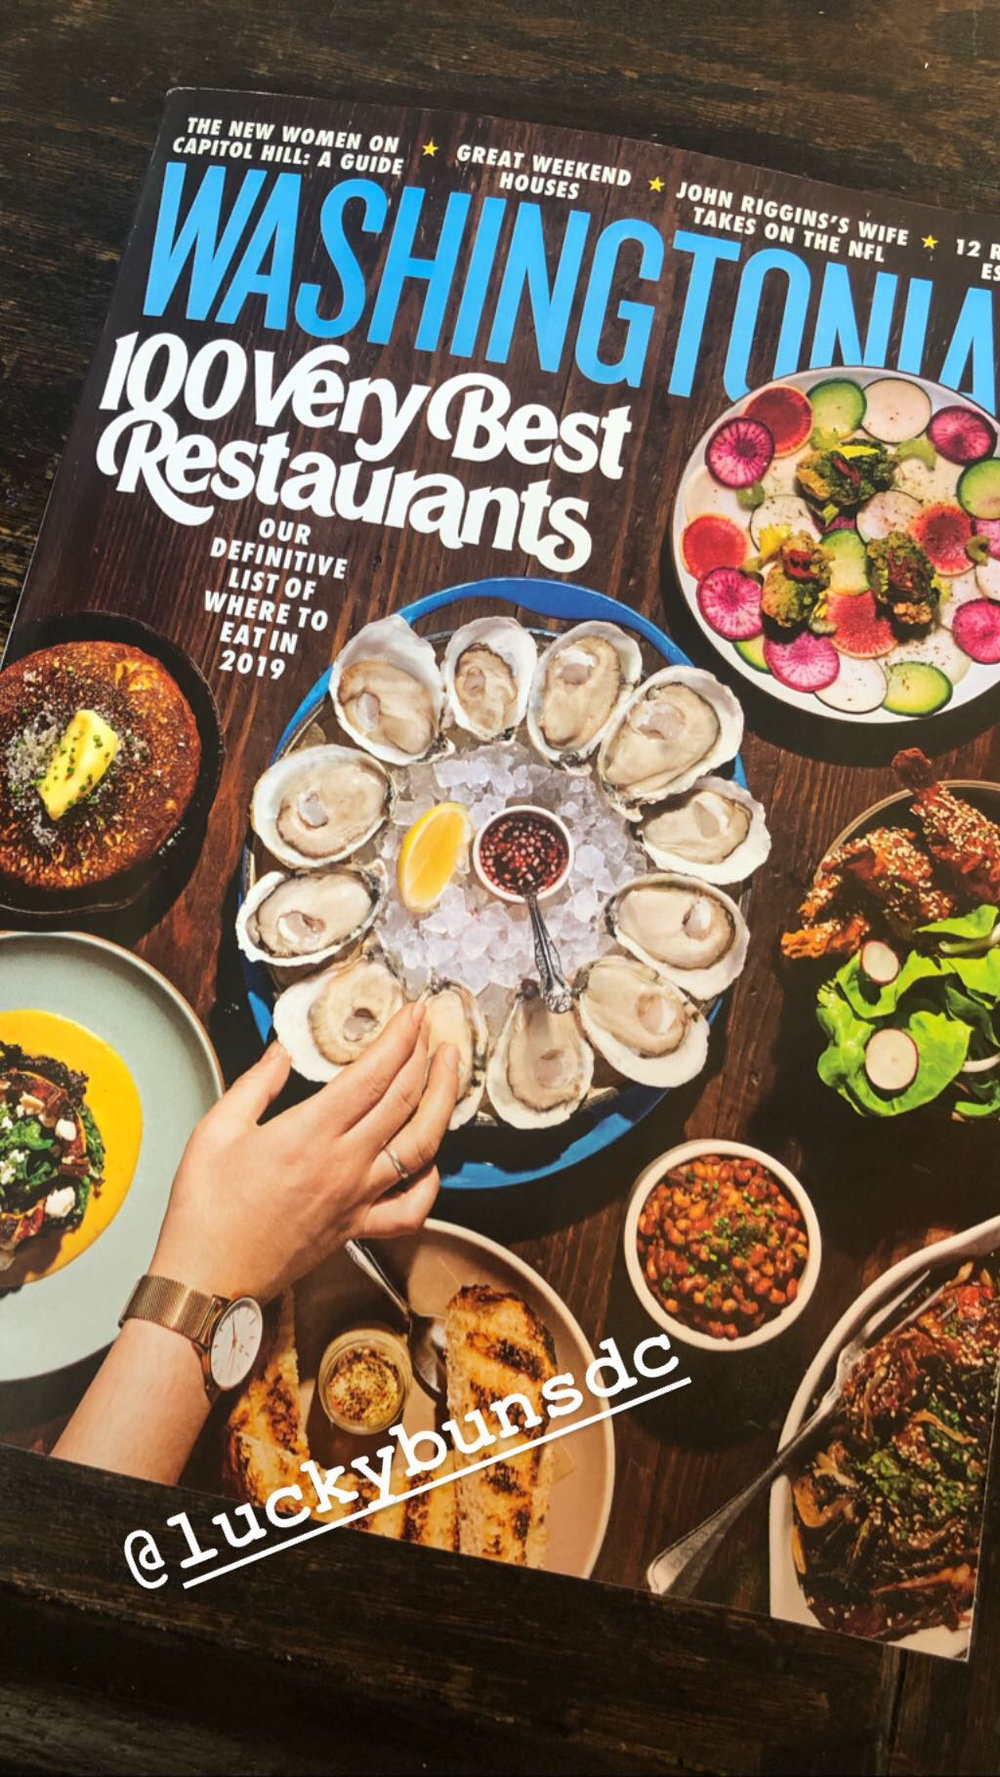 "WASHINGTONIAN MAGAZINE ""100 VERY BEST RESTAURANTS 2019"" - ""Best burger in DC"" is a contentious title, but let's agree for now: Alex McCoy's Adams Morgan patty place reigns supreme. There are a few cheffy touches—locally baked sesame-brioche buns, Creekstone Farm beef griddled with tallow for diner-style crunch—but that's where fussiness ends. The mood is chill, the tallboys are cold, the music (and patrons) are loud. It's all best soaked up with curry chips and a burger dripping with chili-aïoli and melty Gouda (or, if you prefer, bang-up fried-chicken sandwiches)."